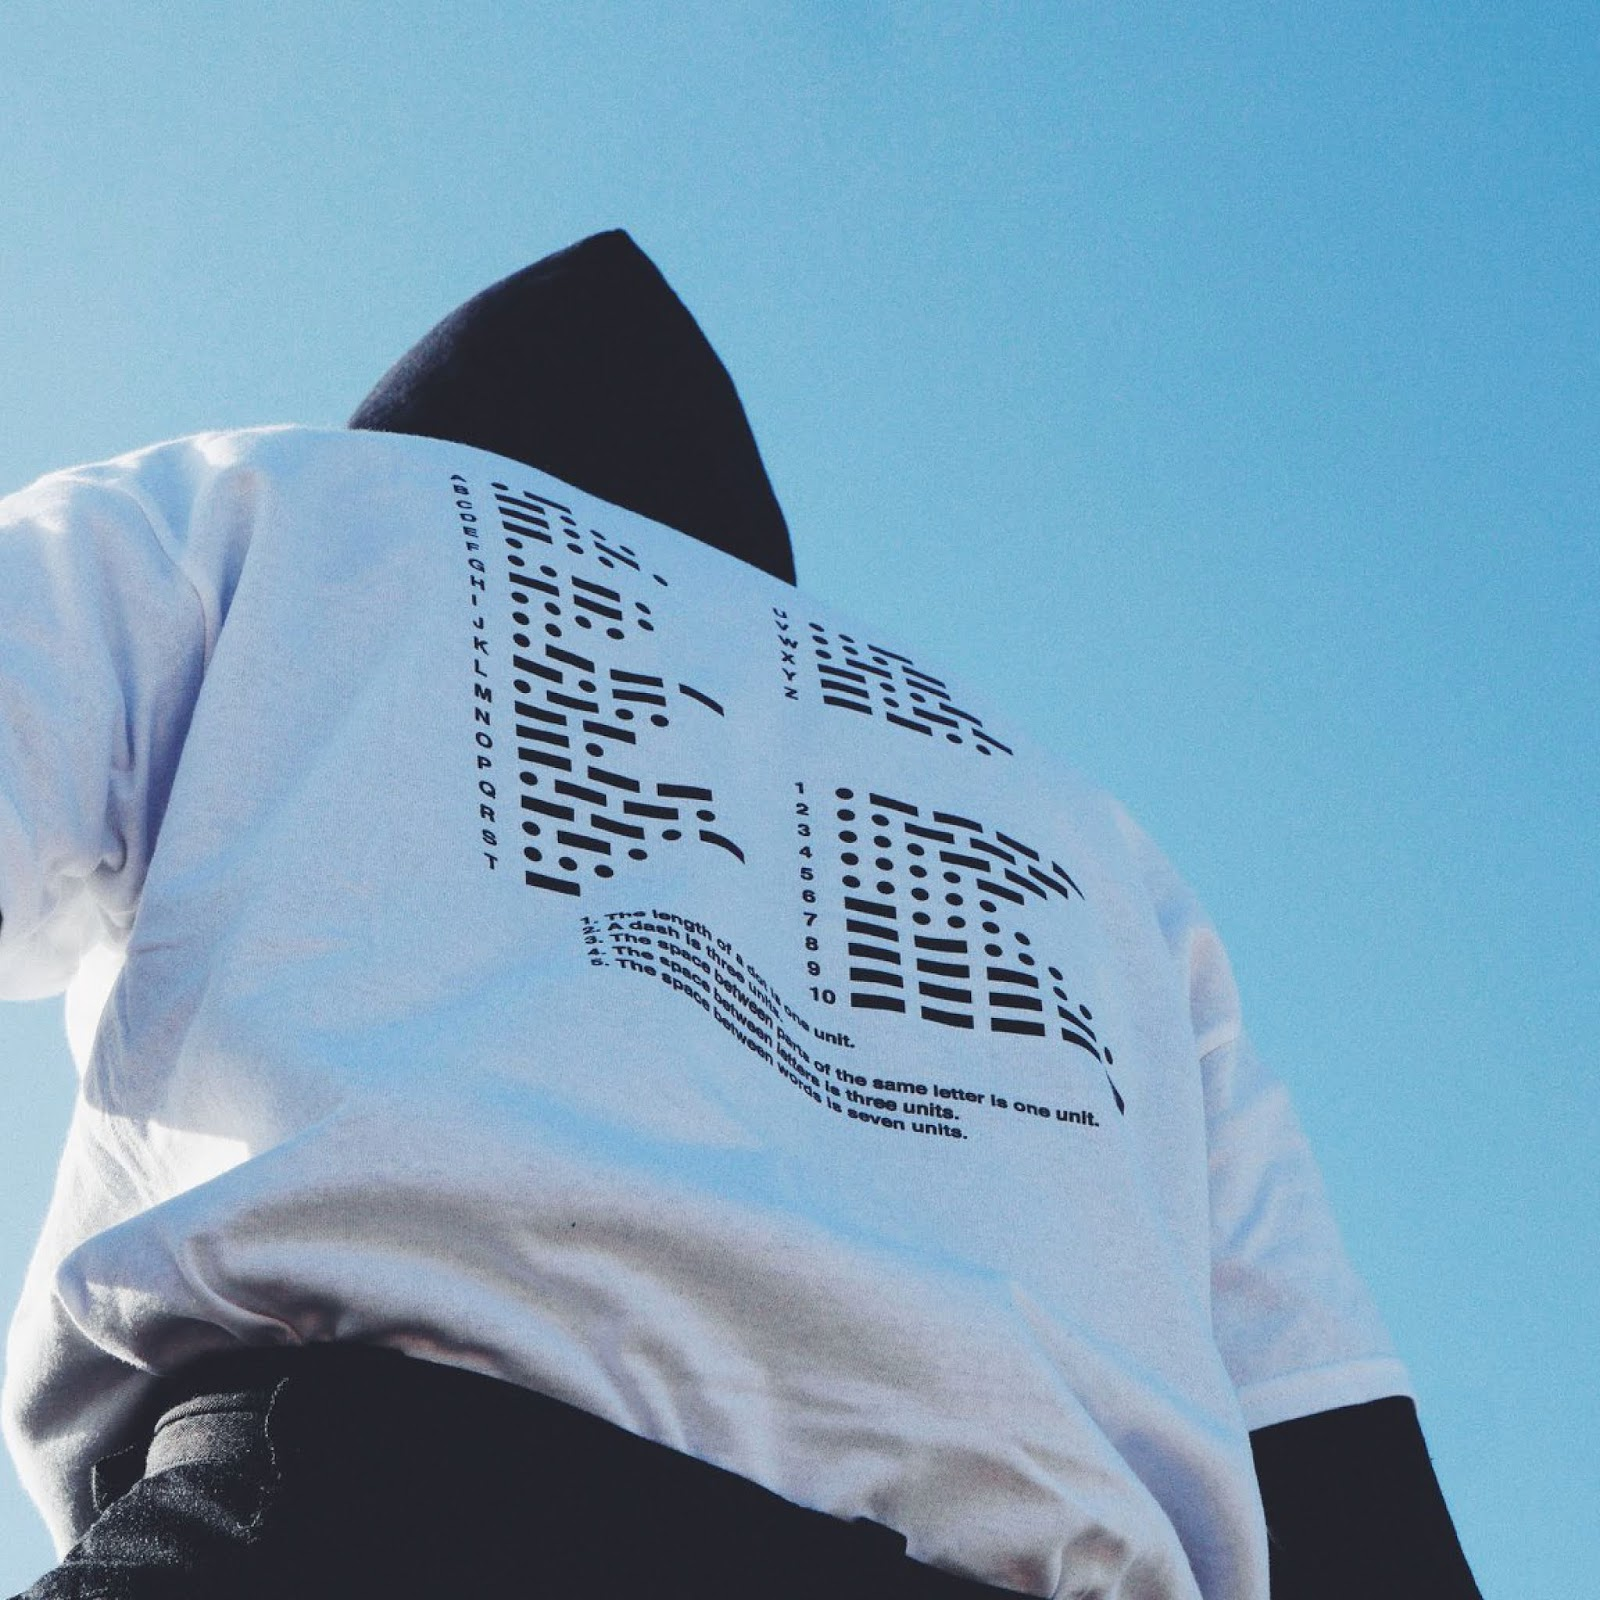 surfinestate brand clothing apparel Hossegor France screenprint morse code Vincent Lemanceau Arthur Nelli